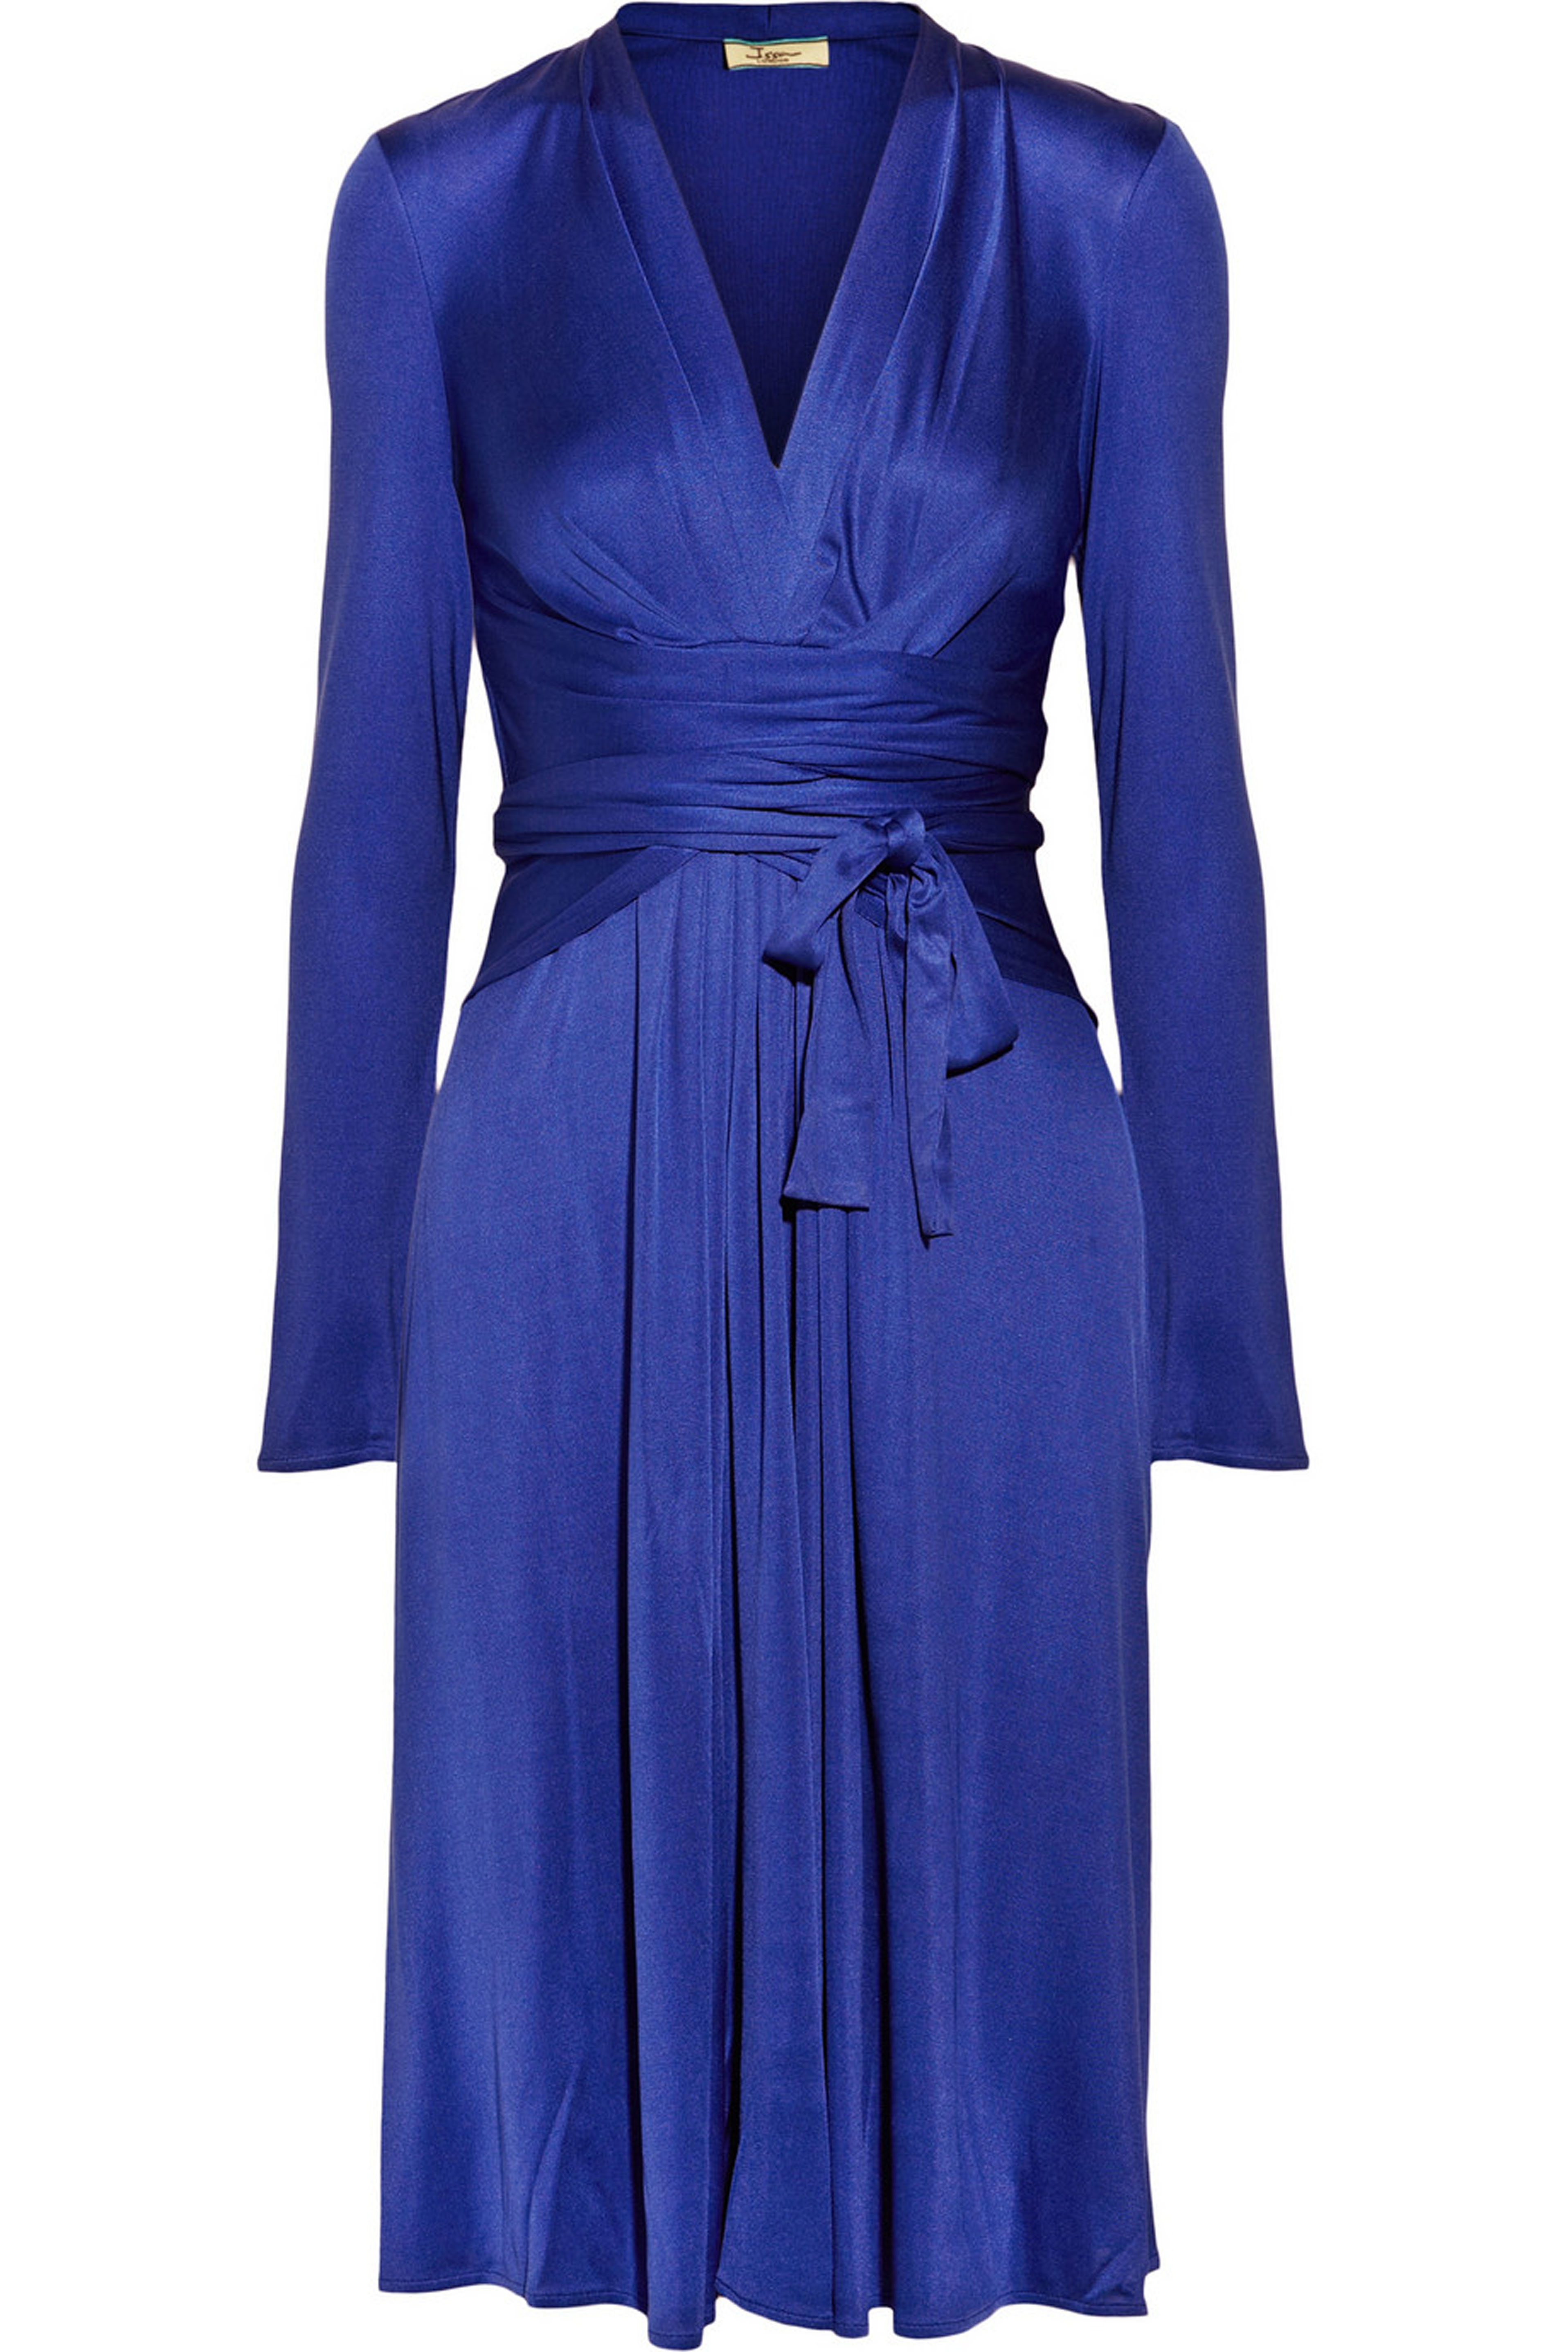 """Plan Ahead: Kate Middleton's Blue Issa """"Engagement"""" Dress Is Arriving At The OUTNET.COM"""